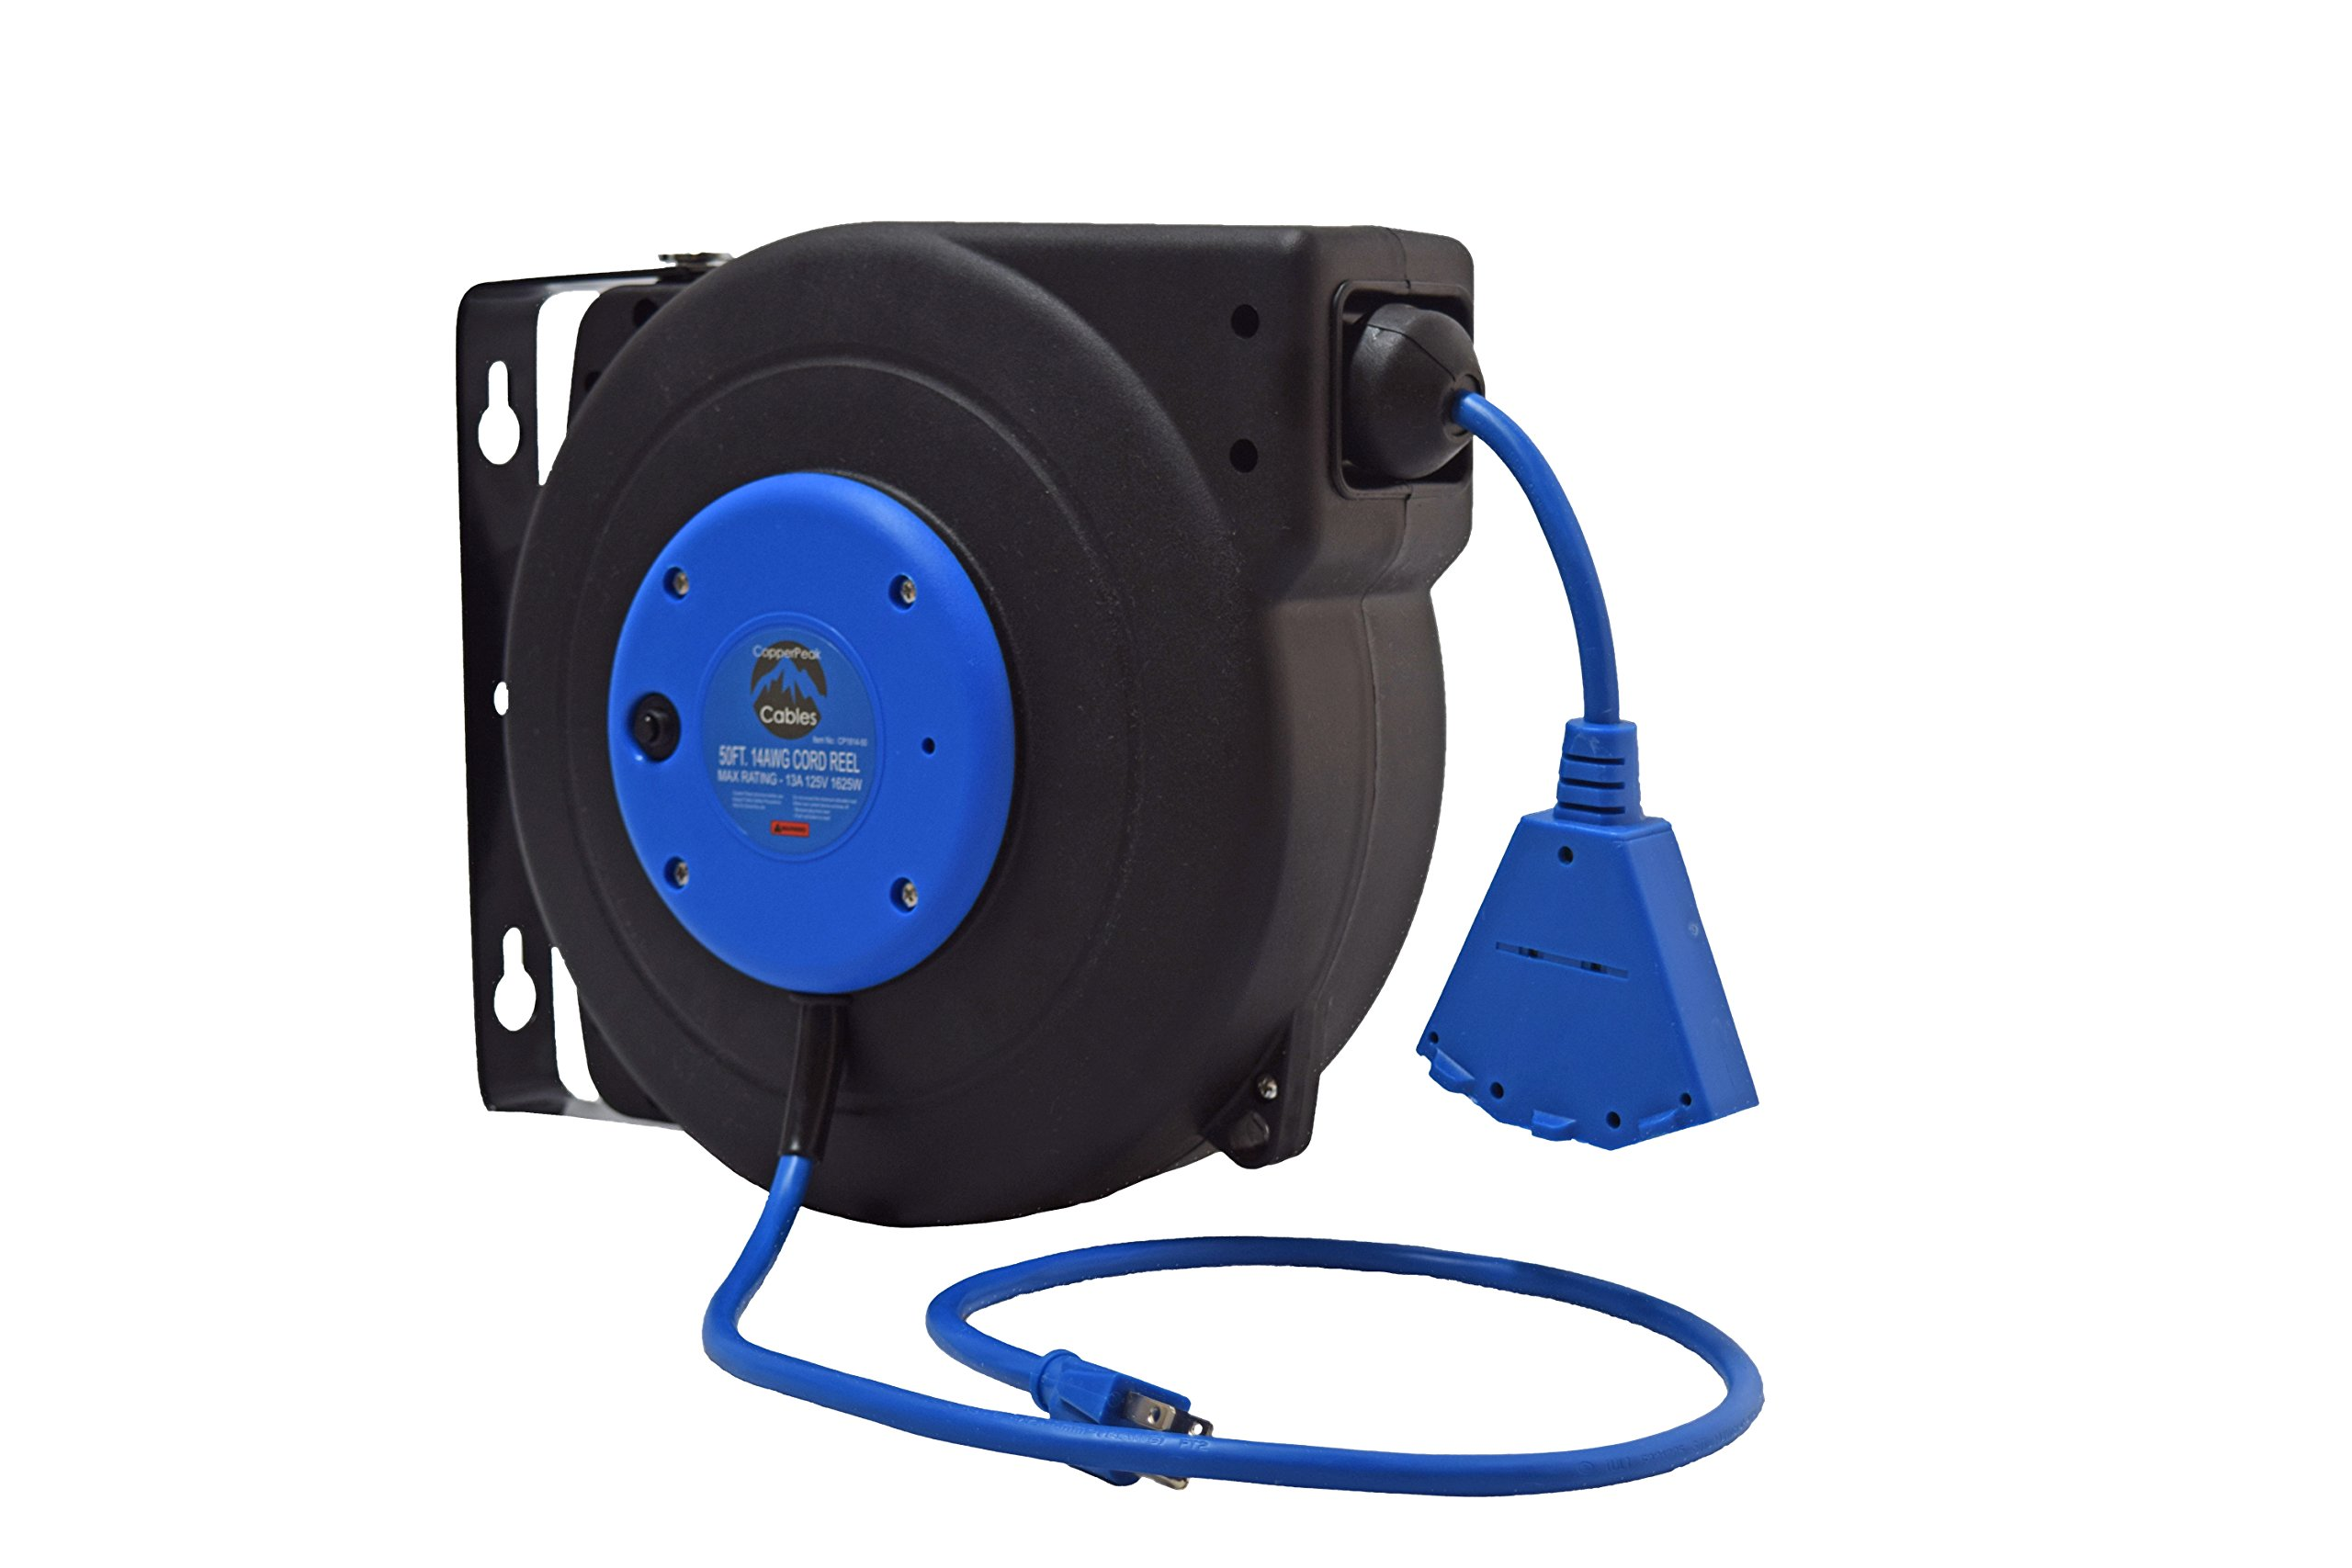 Retractable Extension Cord >> Details About Copperpeak 50 Ft Retractable Extension Cord Reel Ceiling Or Wall Mount 14